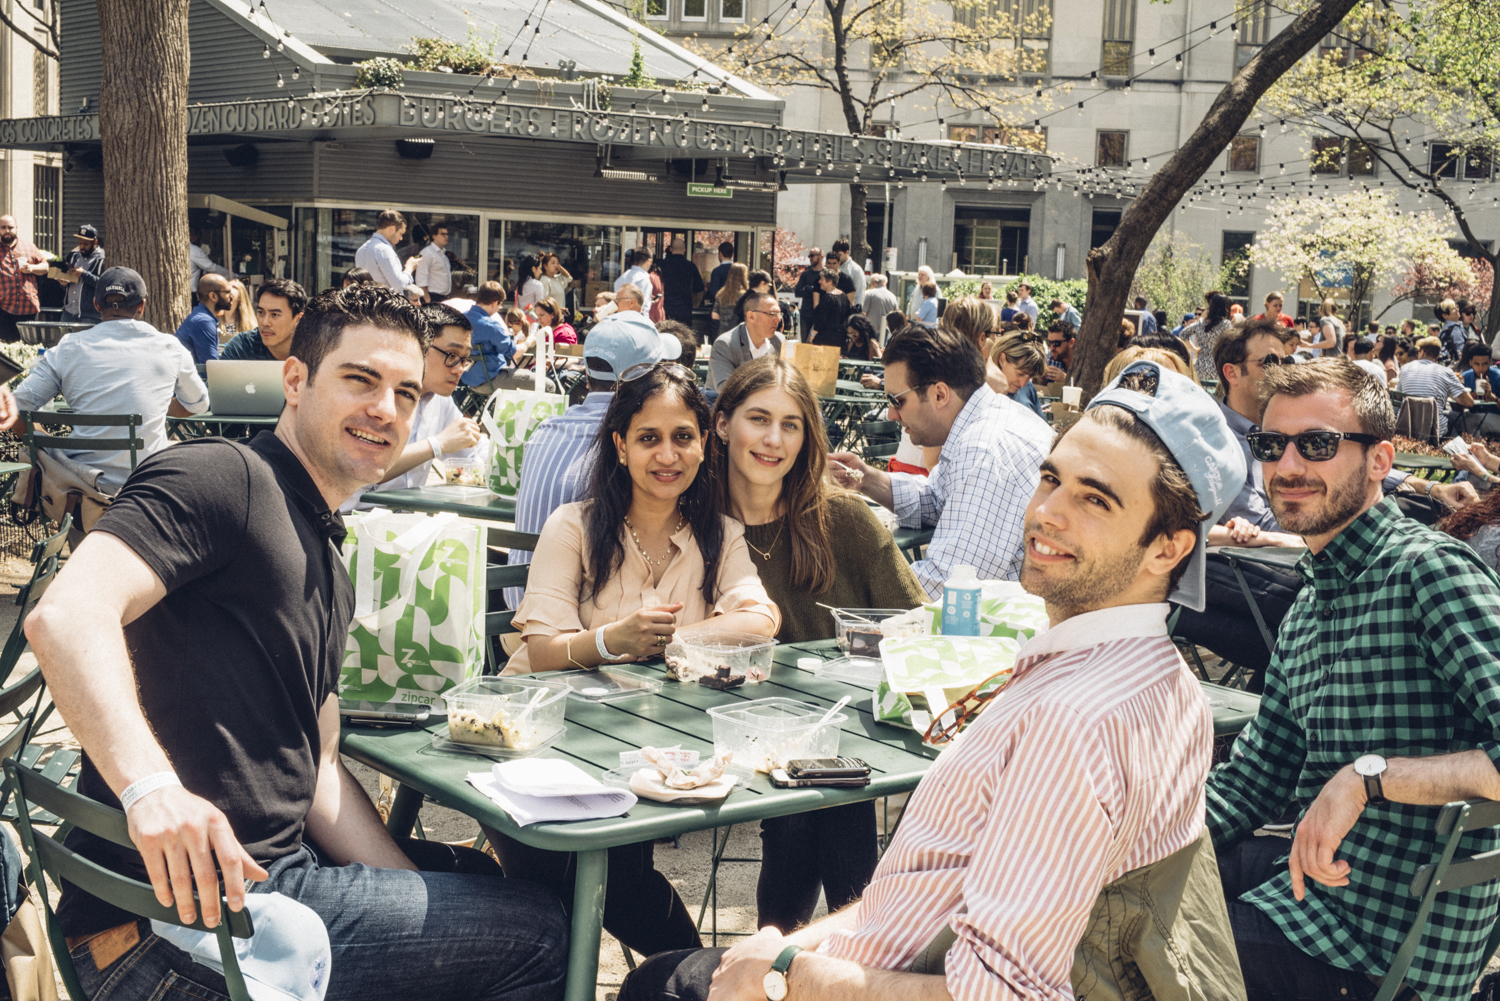 Earth Day New York 2016 ends with lunch in Madison Square Park.